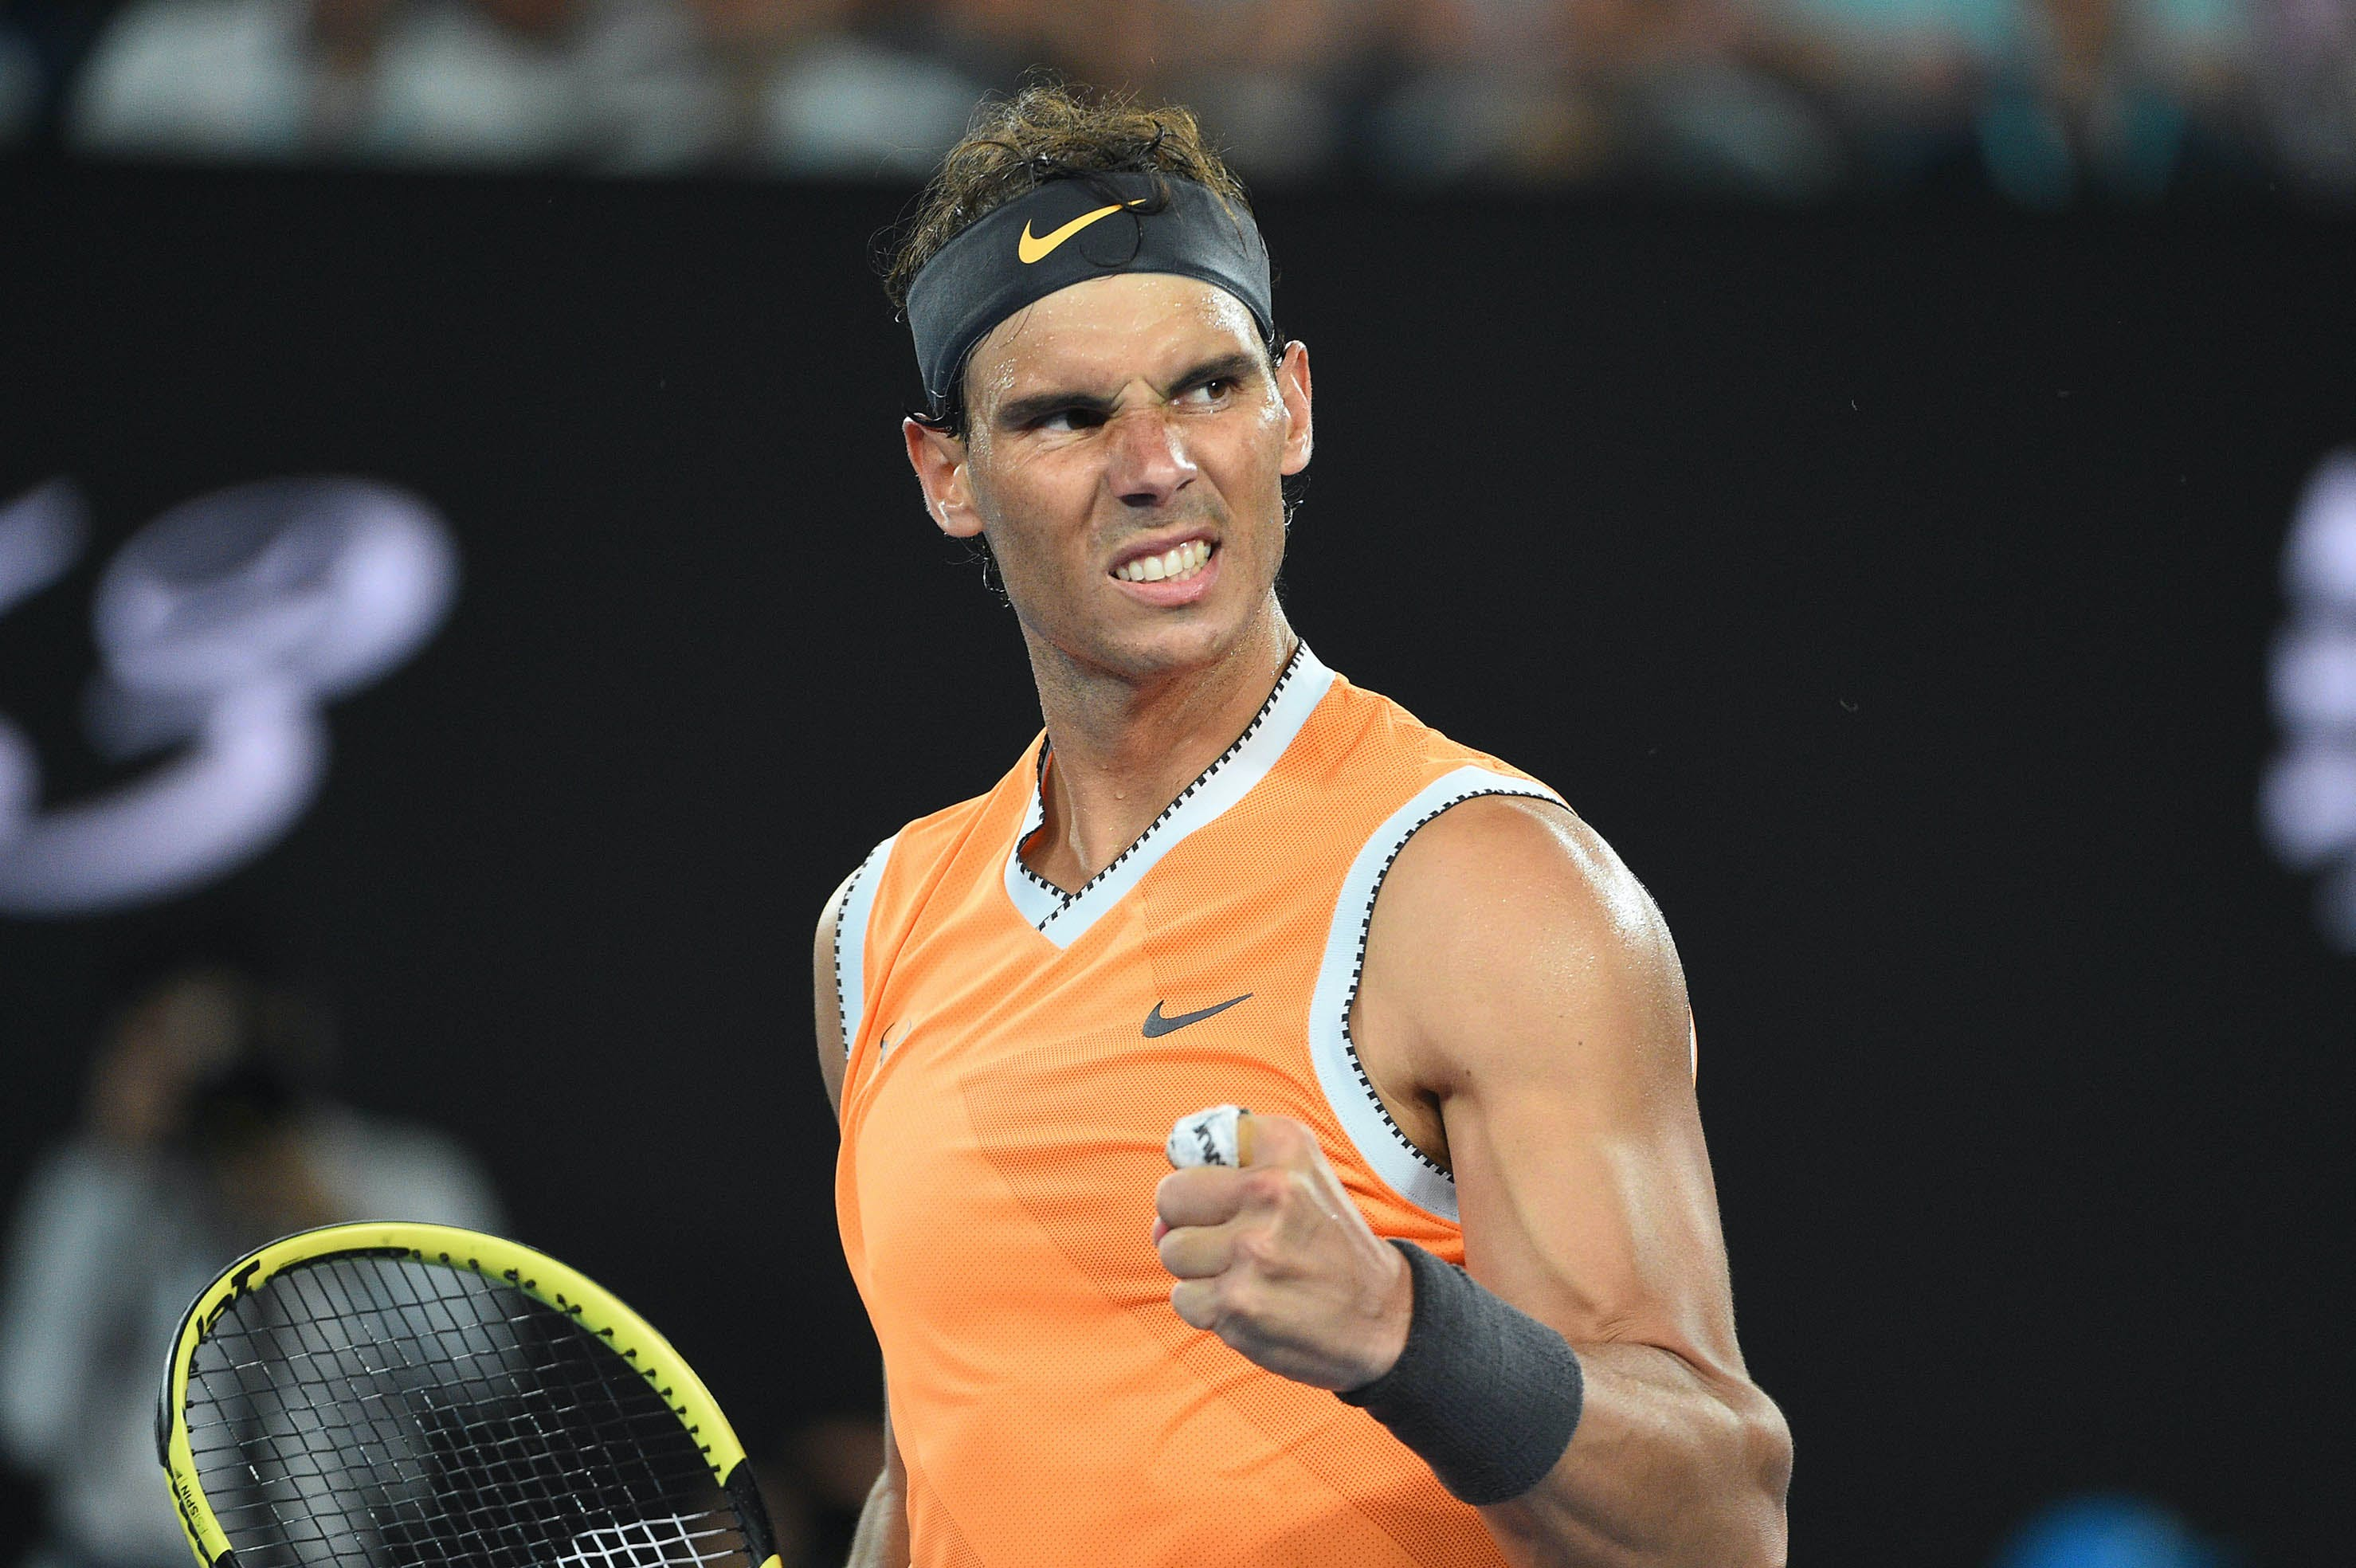 Rafael Nadal after his quartefinal win at the 2019 Australian Open